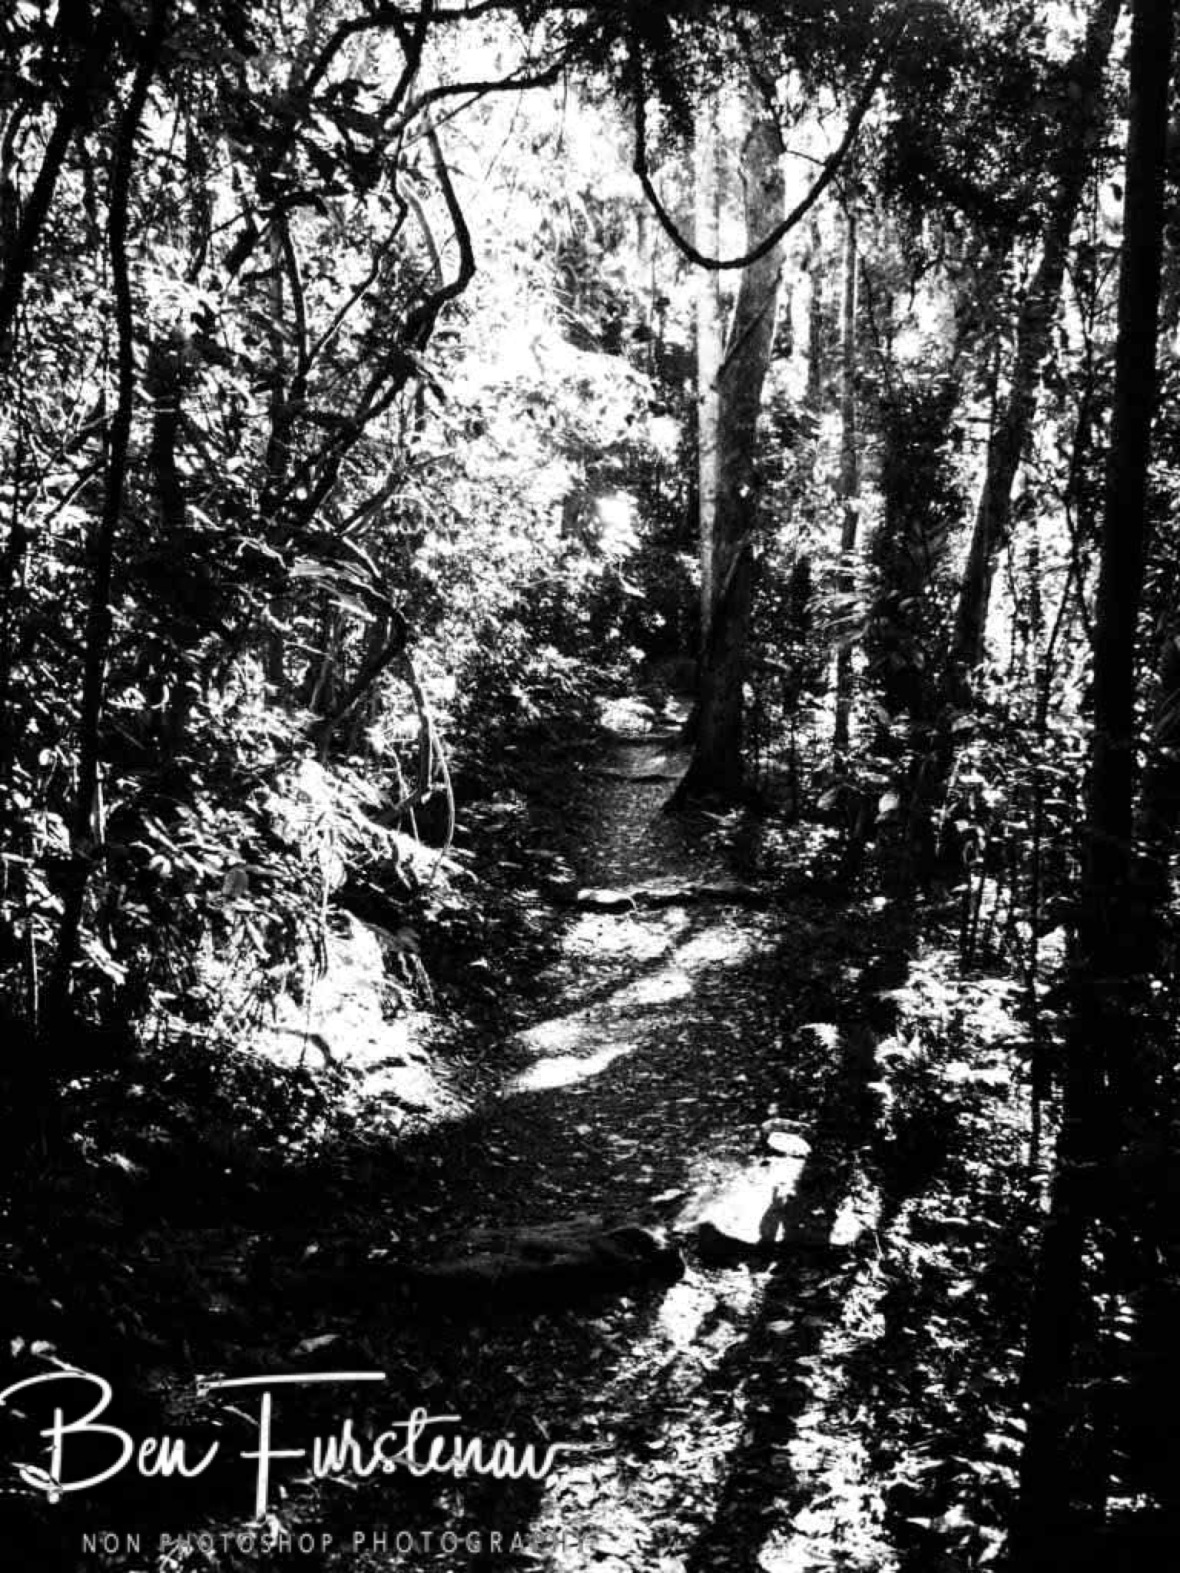 Long shadows in black and white at Lamington National Park, Queensland, Australia